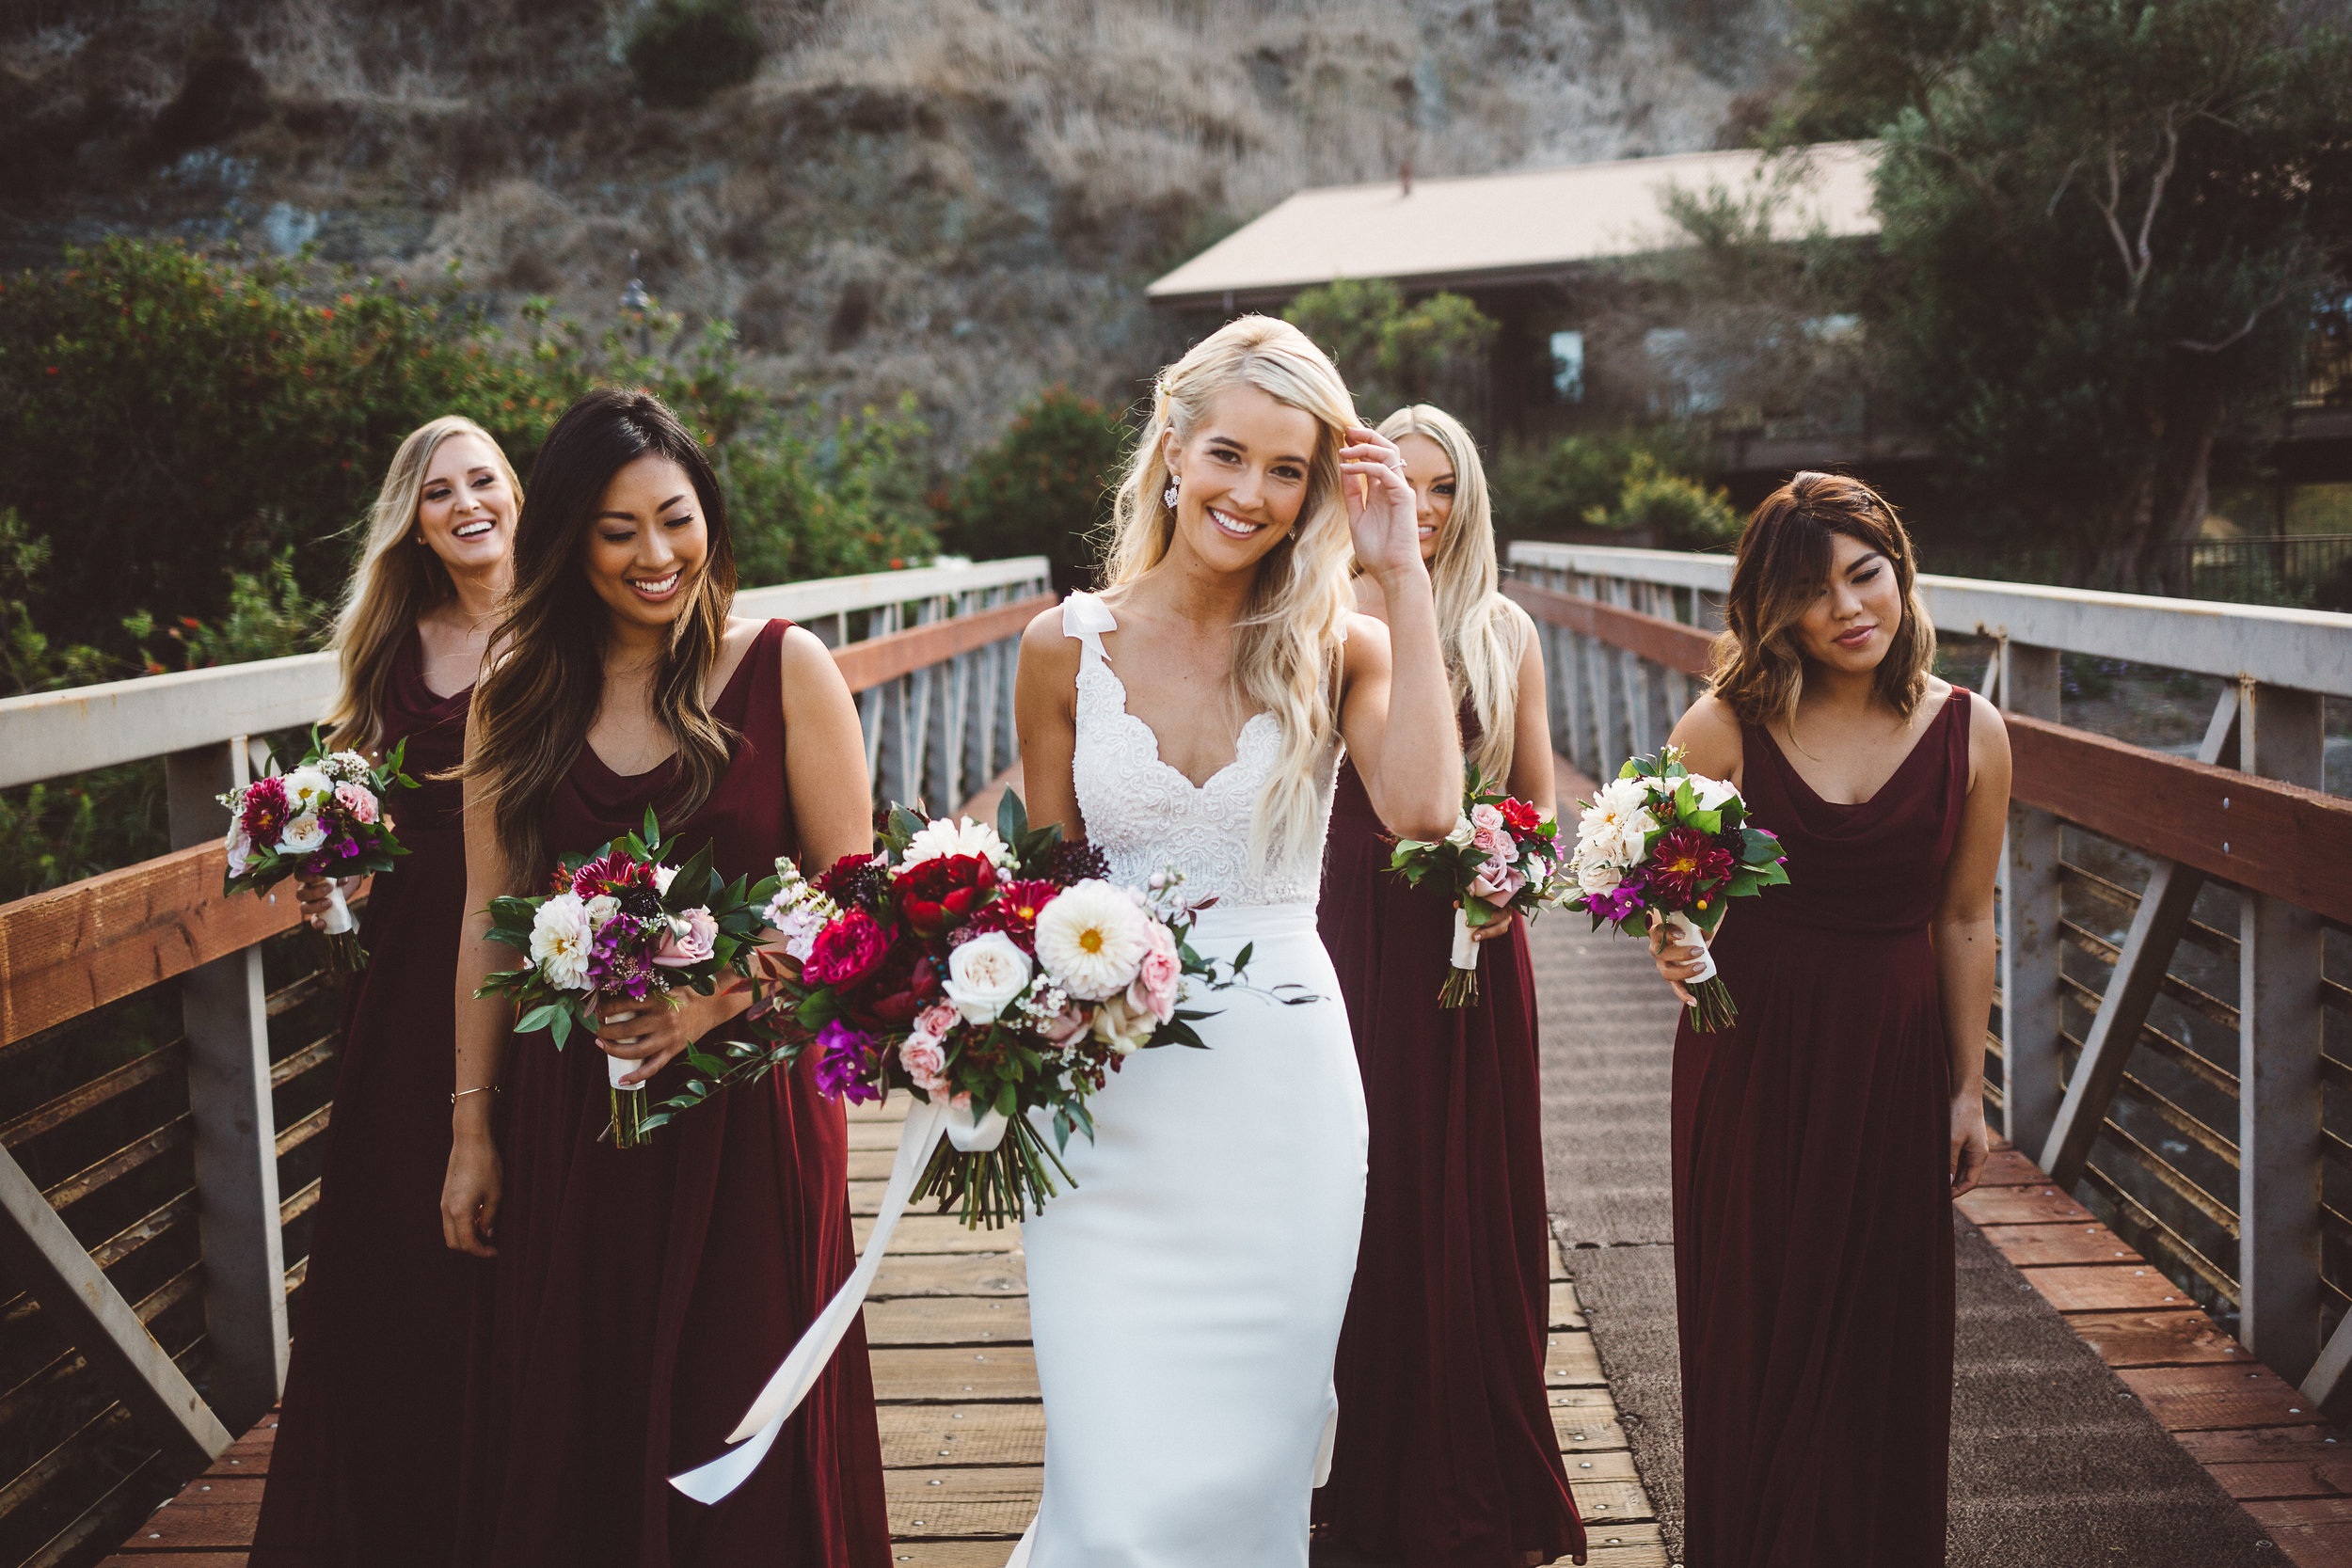 070c7f5f67b HOW TO ENJOY PLANNING YOUR WEDDING — Level Events